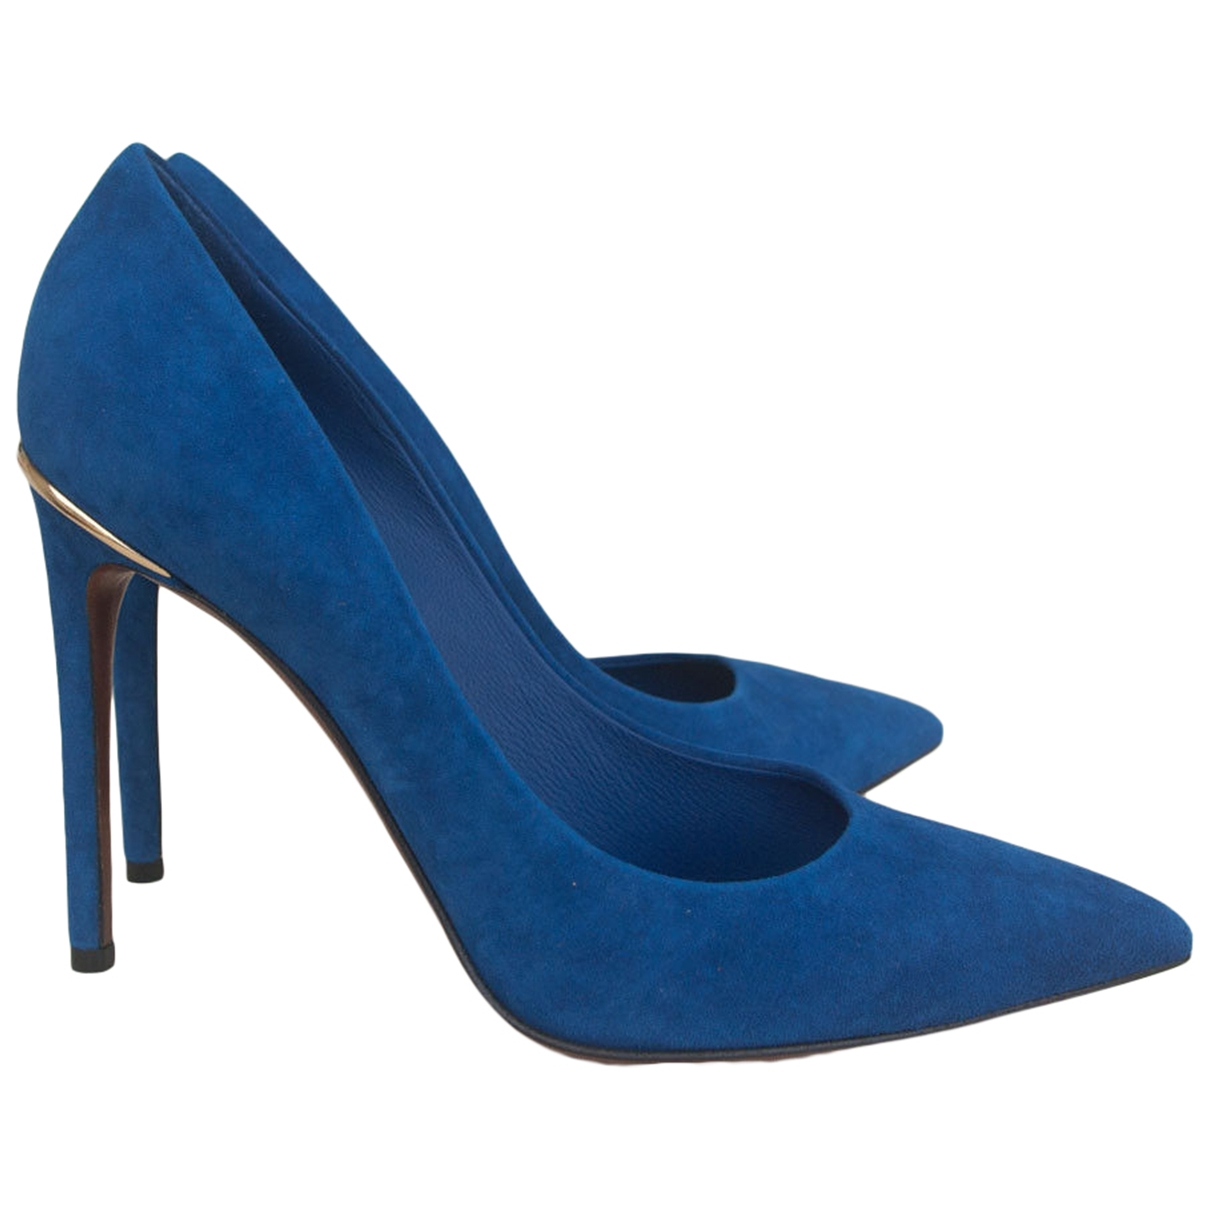 Louis Vuitton \N Pumps in  Blau Veloursleder